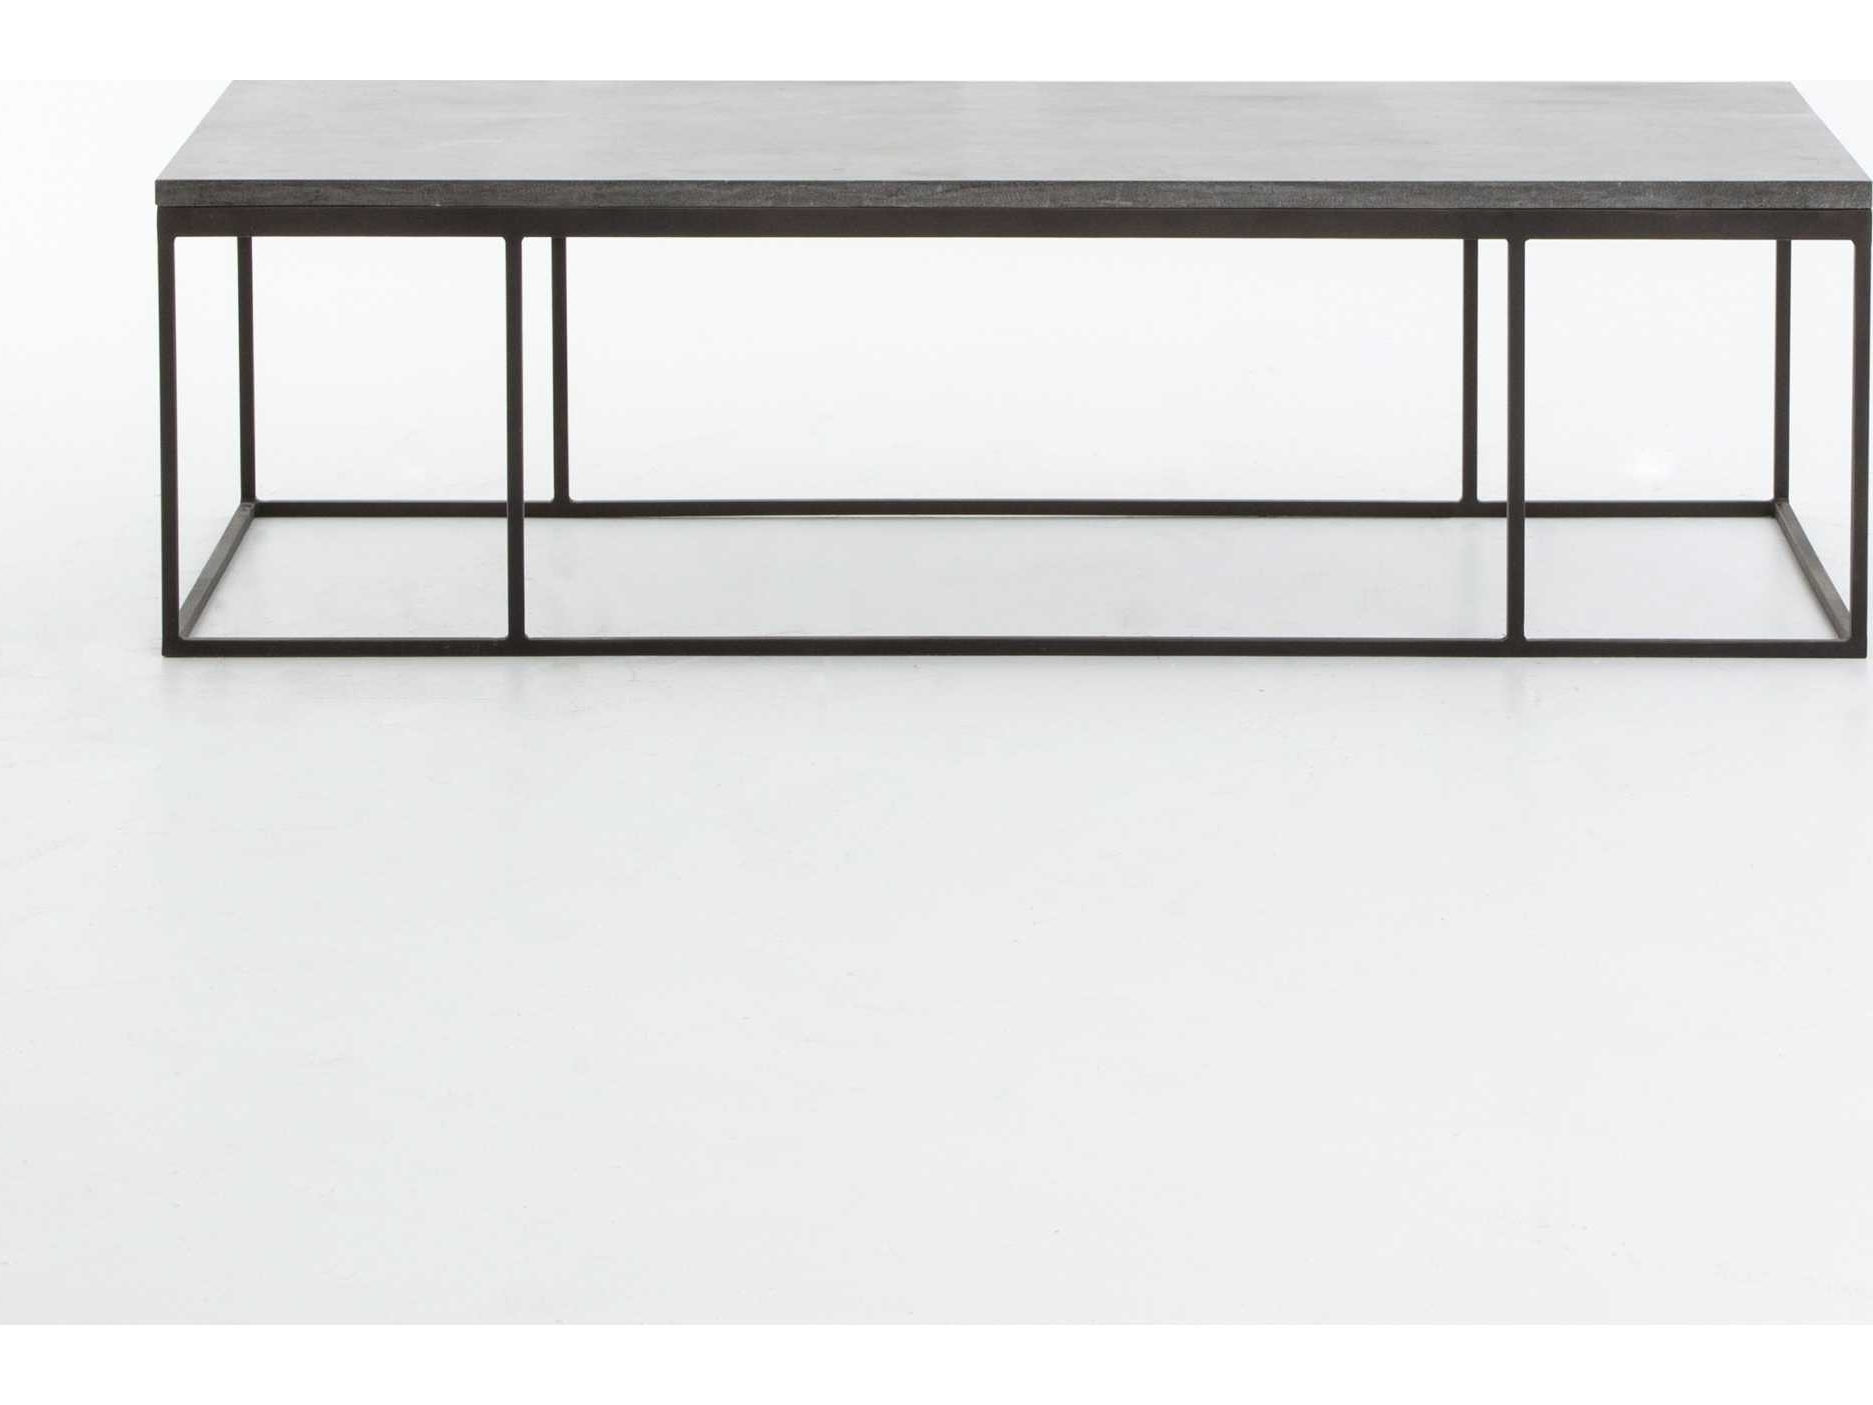 Four Hands Hughes Bluestone 60 X 28 Rectangular Harlow Small Coffee Regarding Fashionable Bluestone Rustic Black Coffee Tables (View 9 of 20)